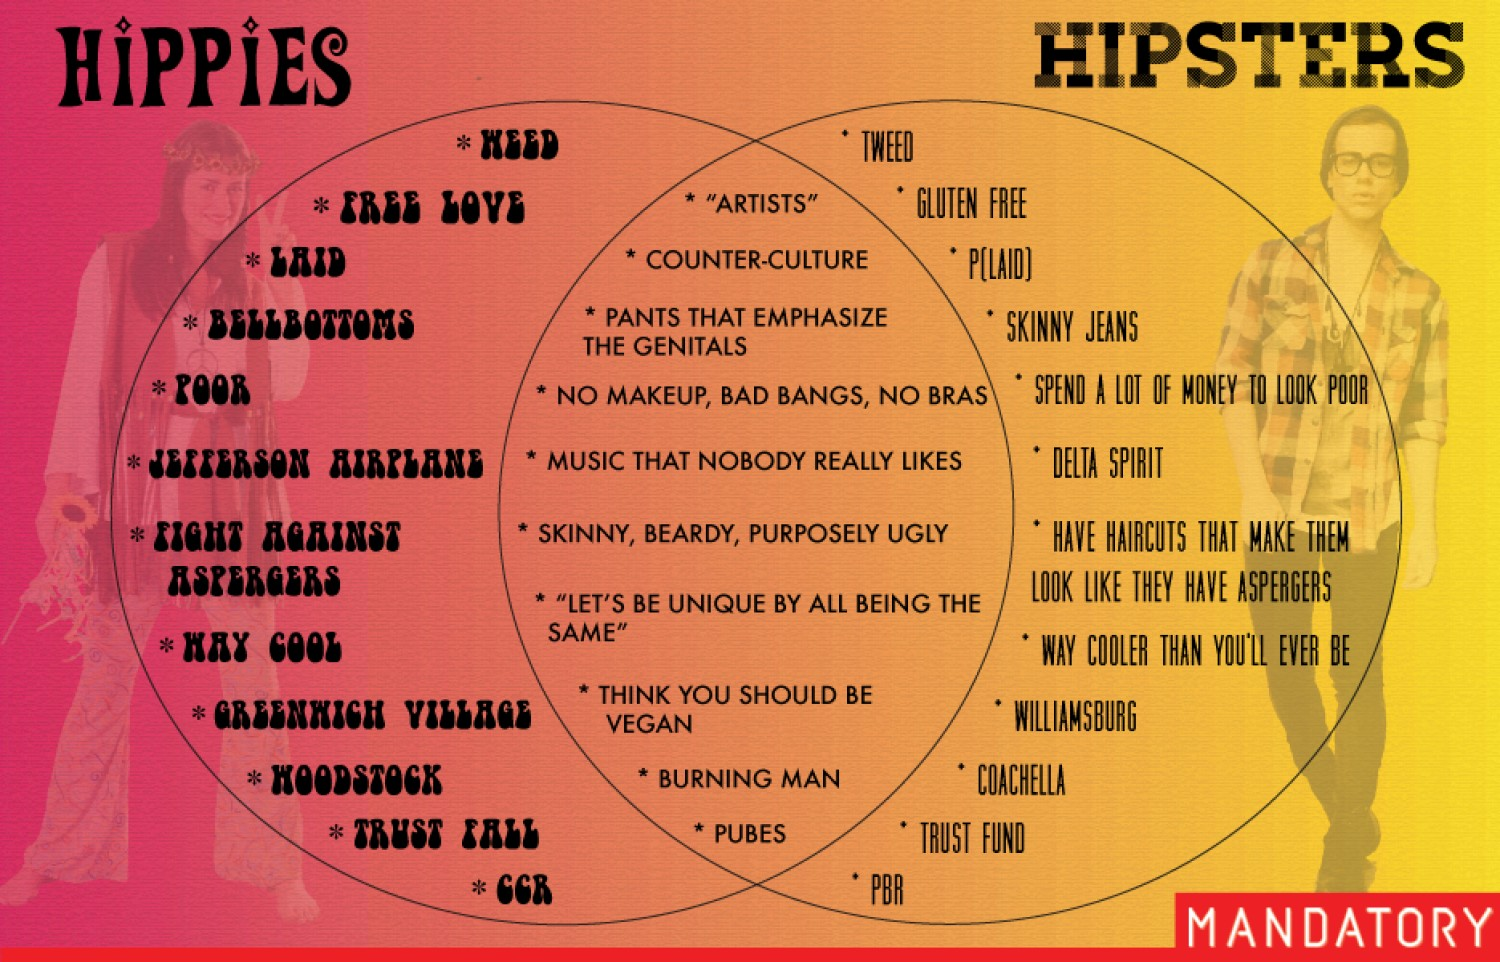 History occupymelbourne hippies vs hipsters a venn diagram5197e0e8c1605w1500g pooptronica